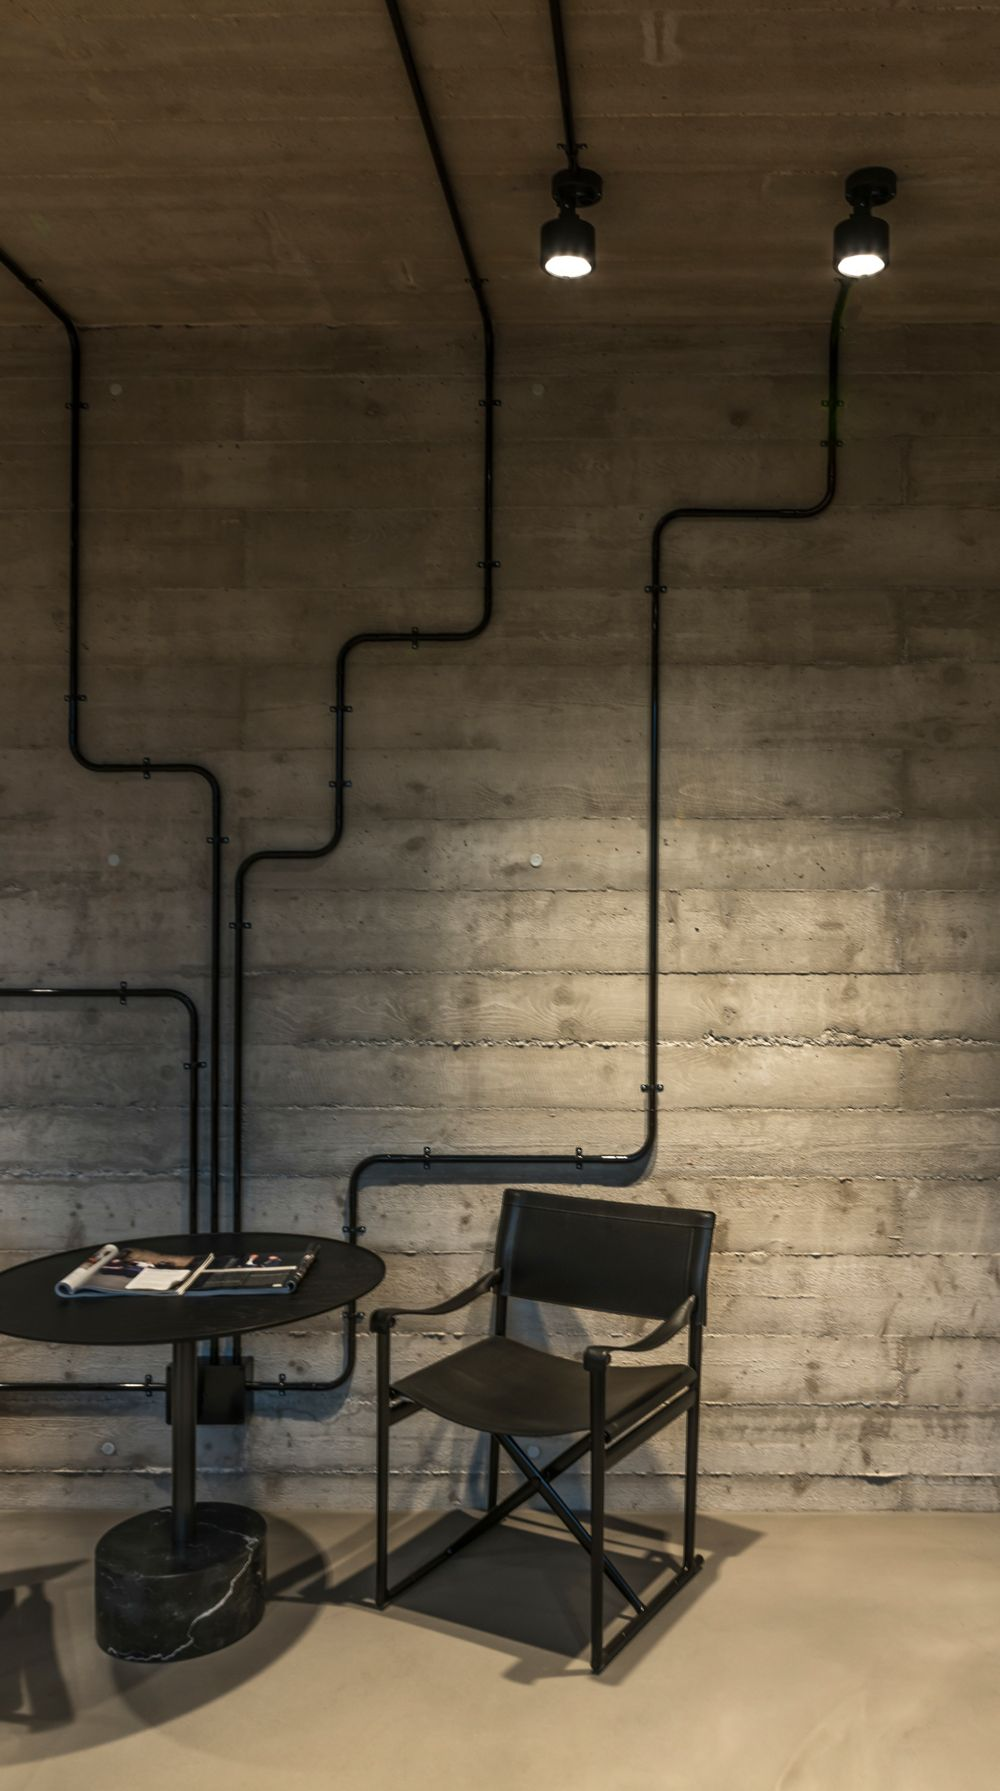 accent erco lighting and surface mounted wiring as a graphic element interior wall surface wiring [ 1000 x 1791 Pixel ]